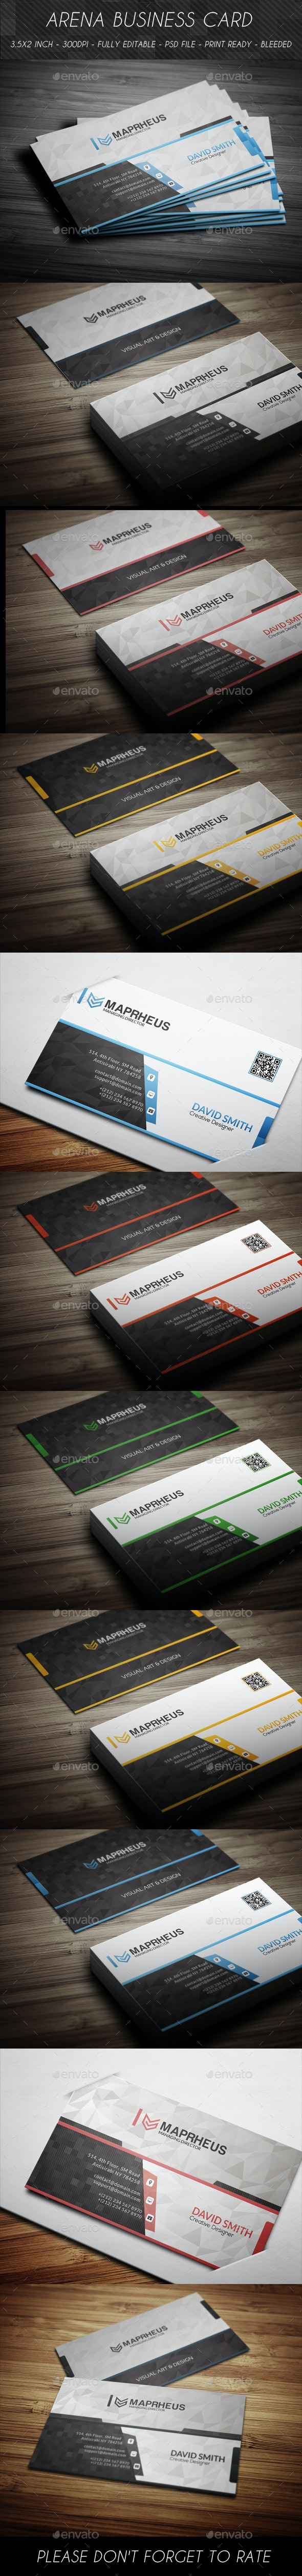 Arena Business Card - Corporate Business Cards